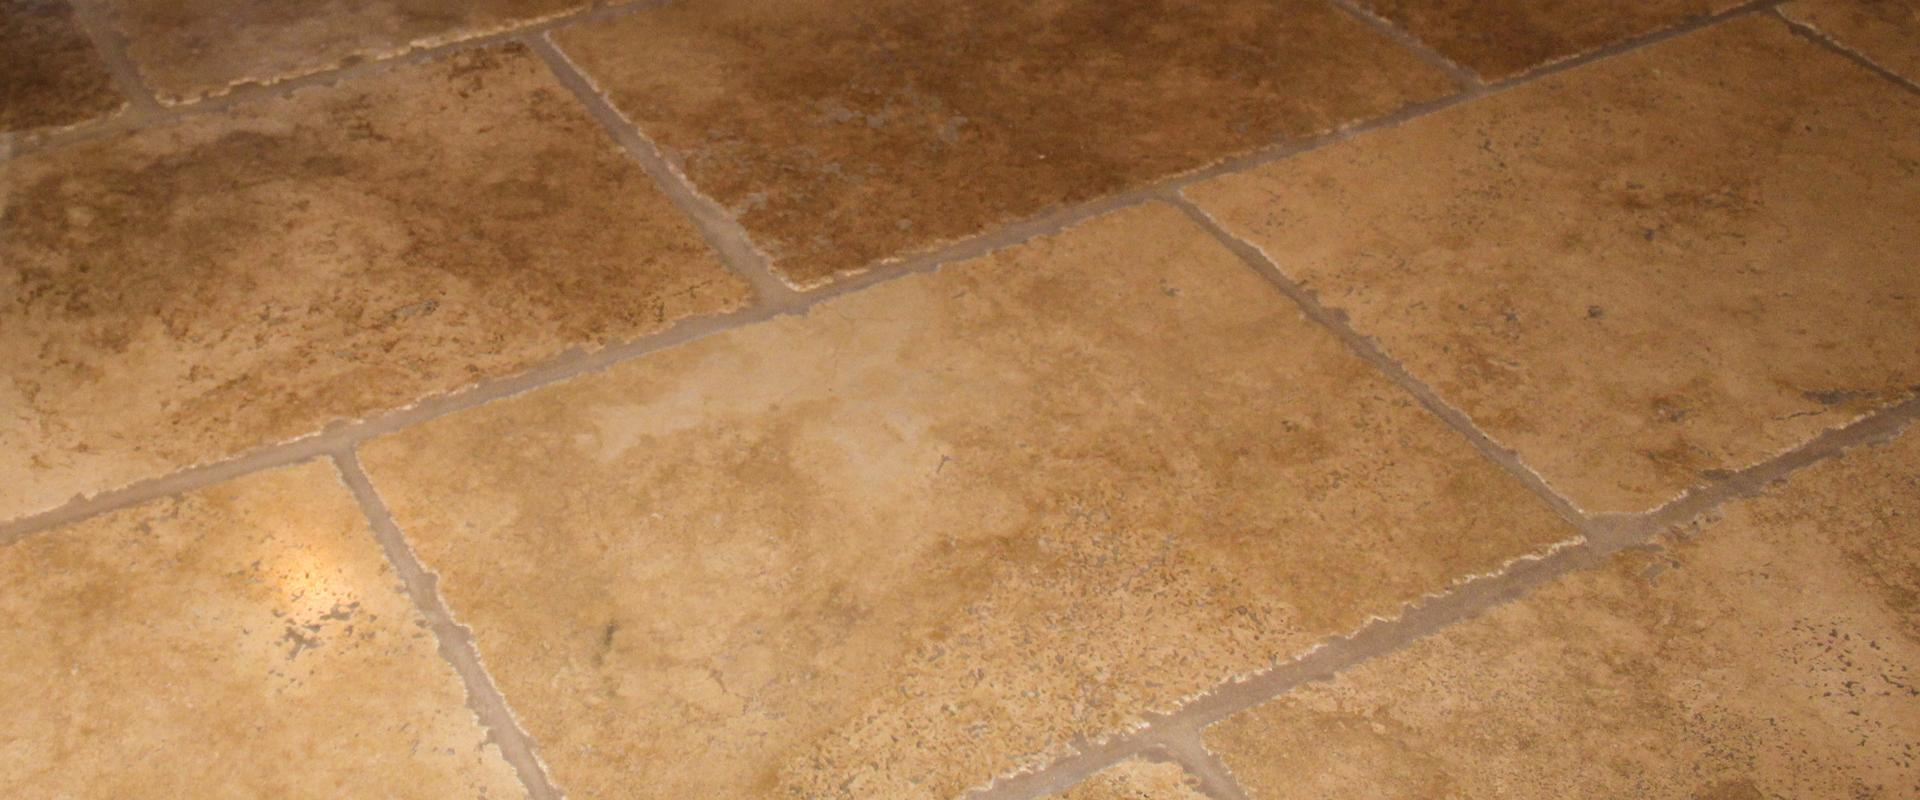 Tile and Grout Cleaning in Tucson | Arizona Tile & Grout